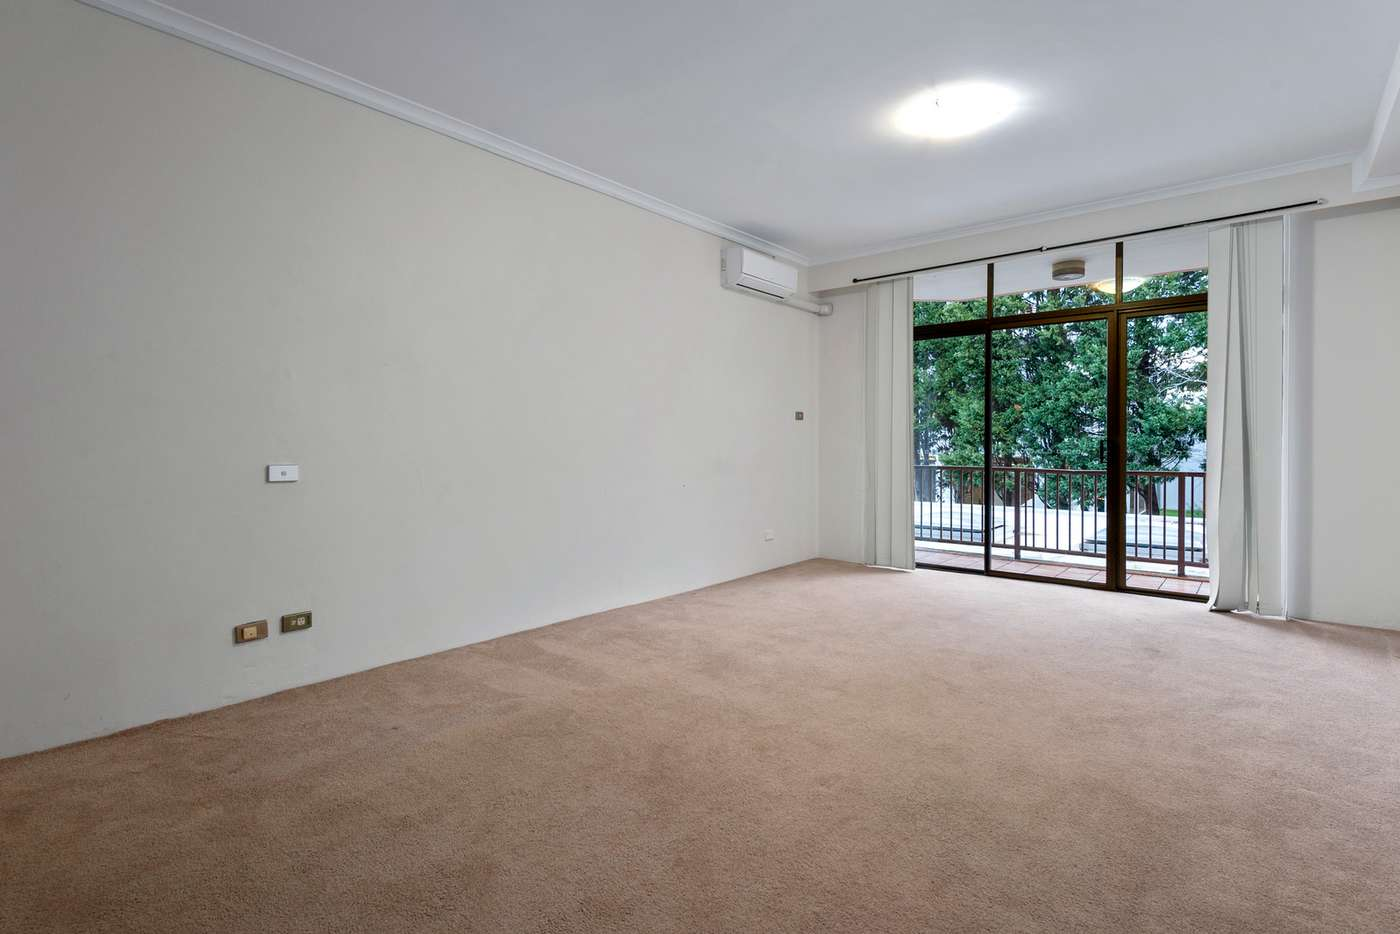 Main view of Homely apartment listing, 52/75-79 Jersey Street North, Hornsby NSW 2077